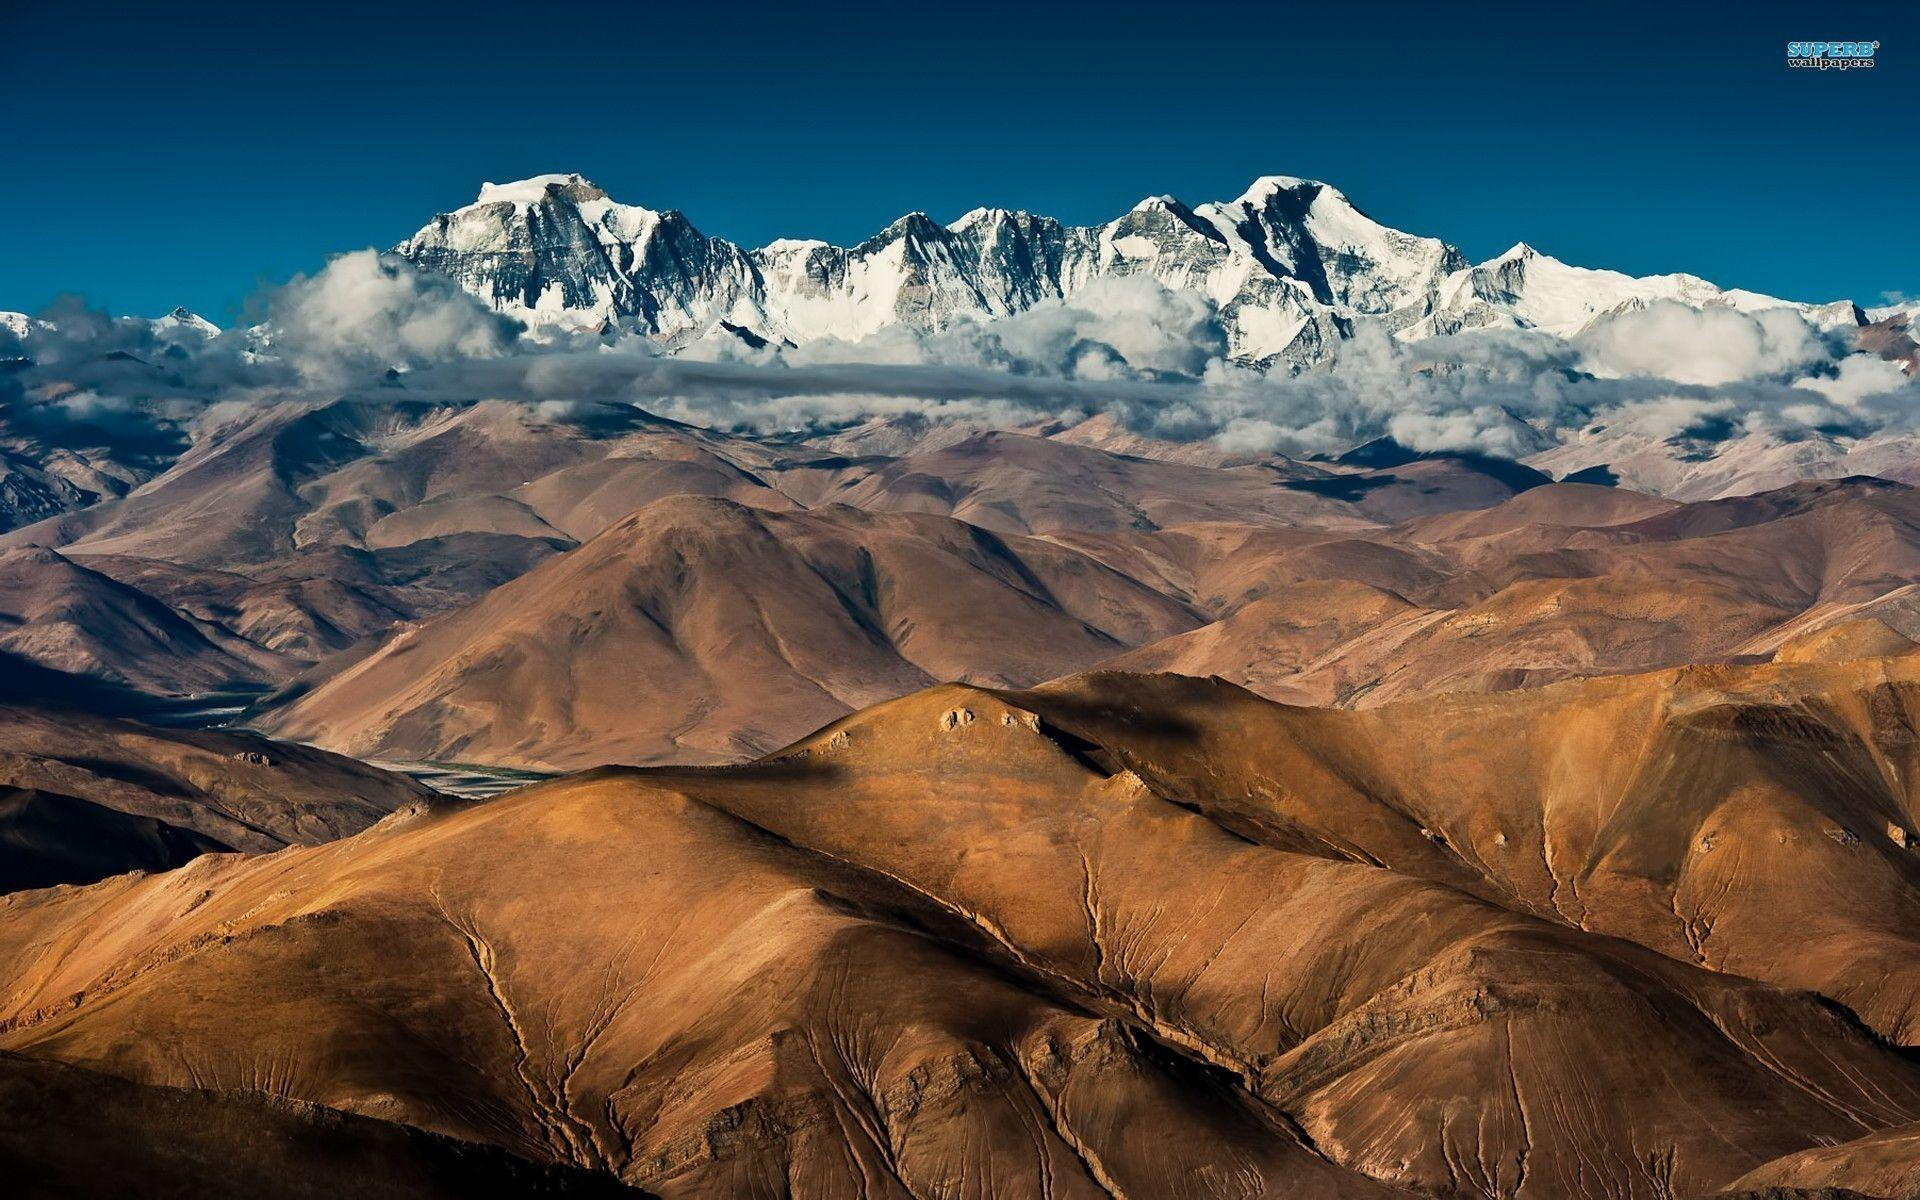 himalaya mountains hd wallpaper - photo #5